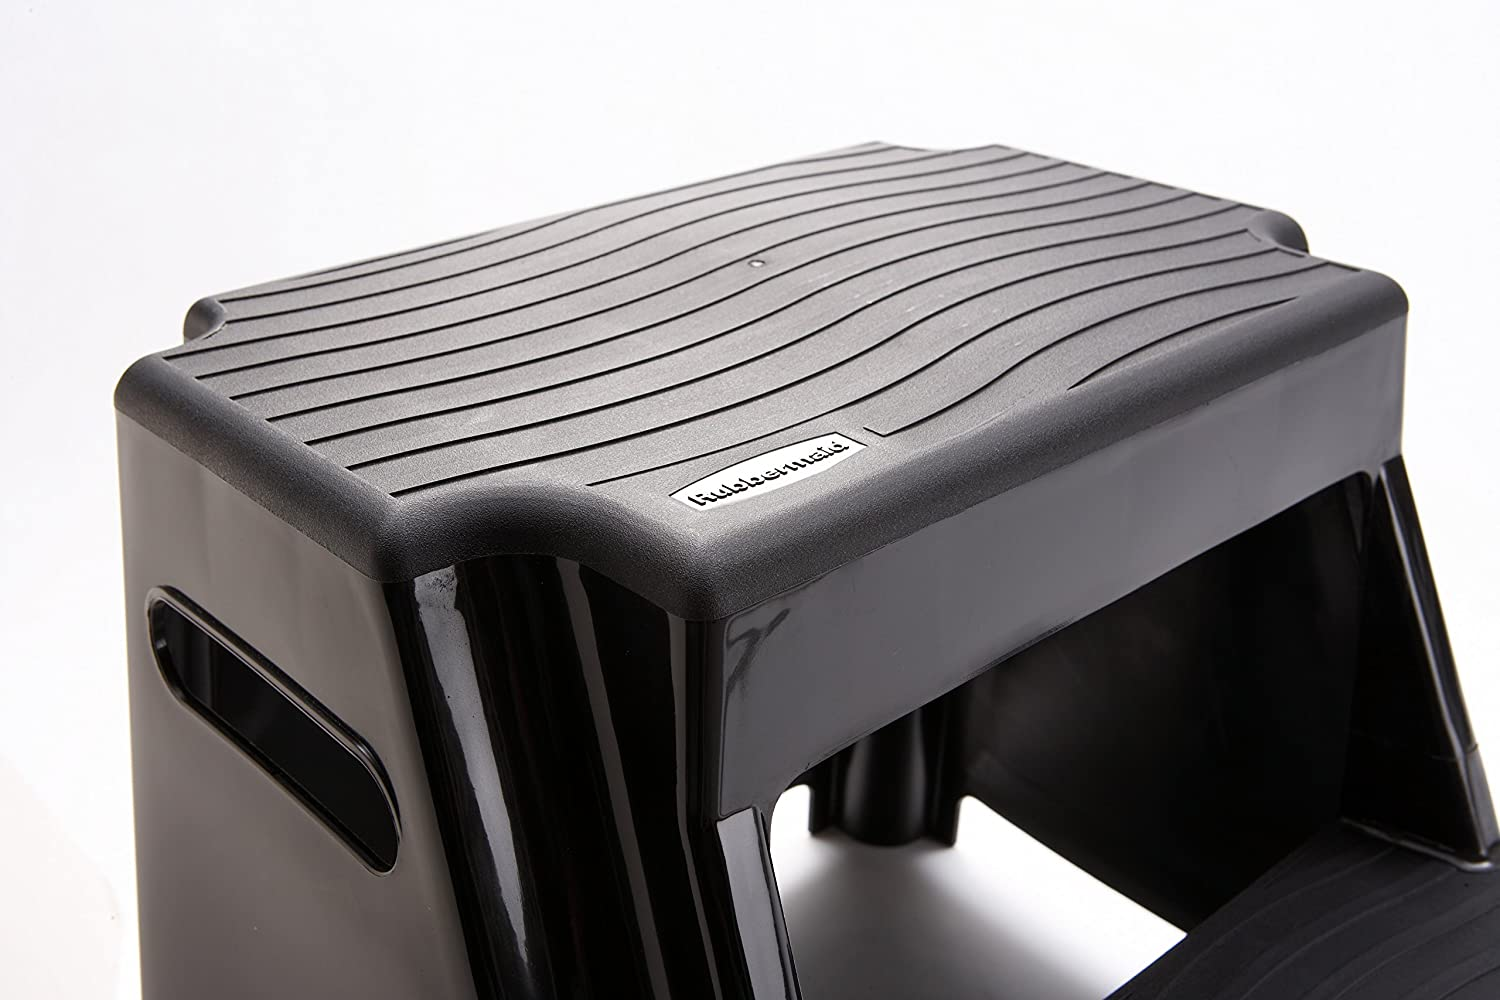 Amazon.com Rubbermaid RM-P2 2-Step Molded Plastic Stool with Non-Slip Step Treads 300-Pound Capacity Black Finish Home Improvement  sc 1 st  Amazon.com : rubber maid step stool - islam-shia.org